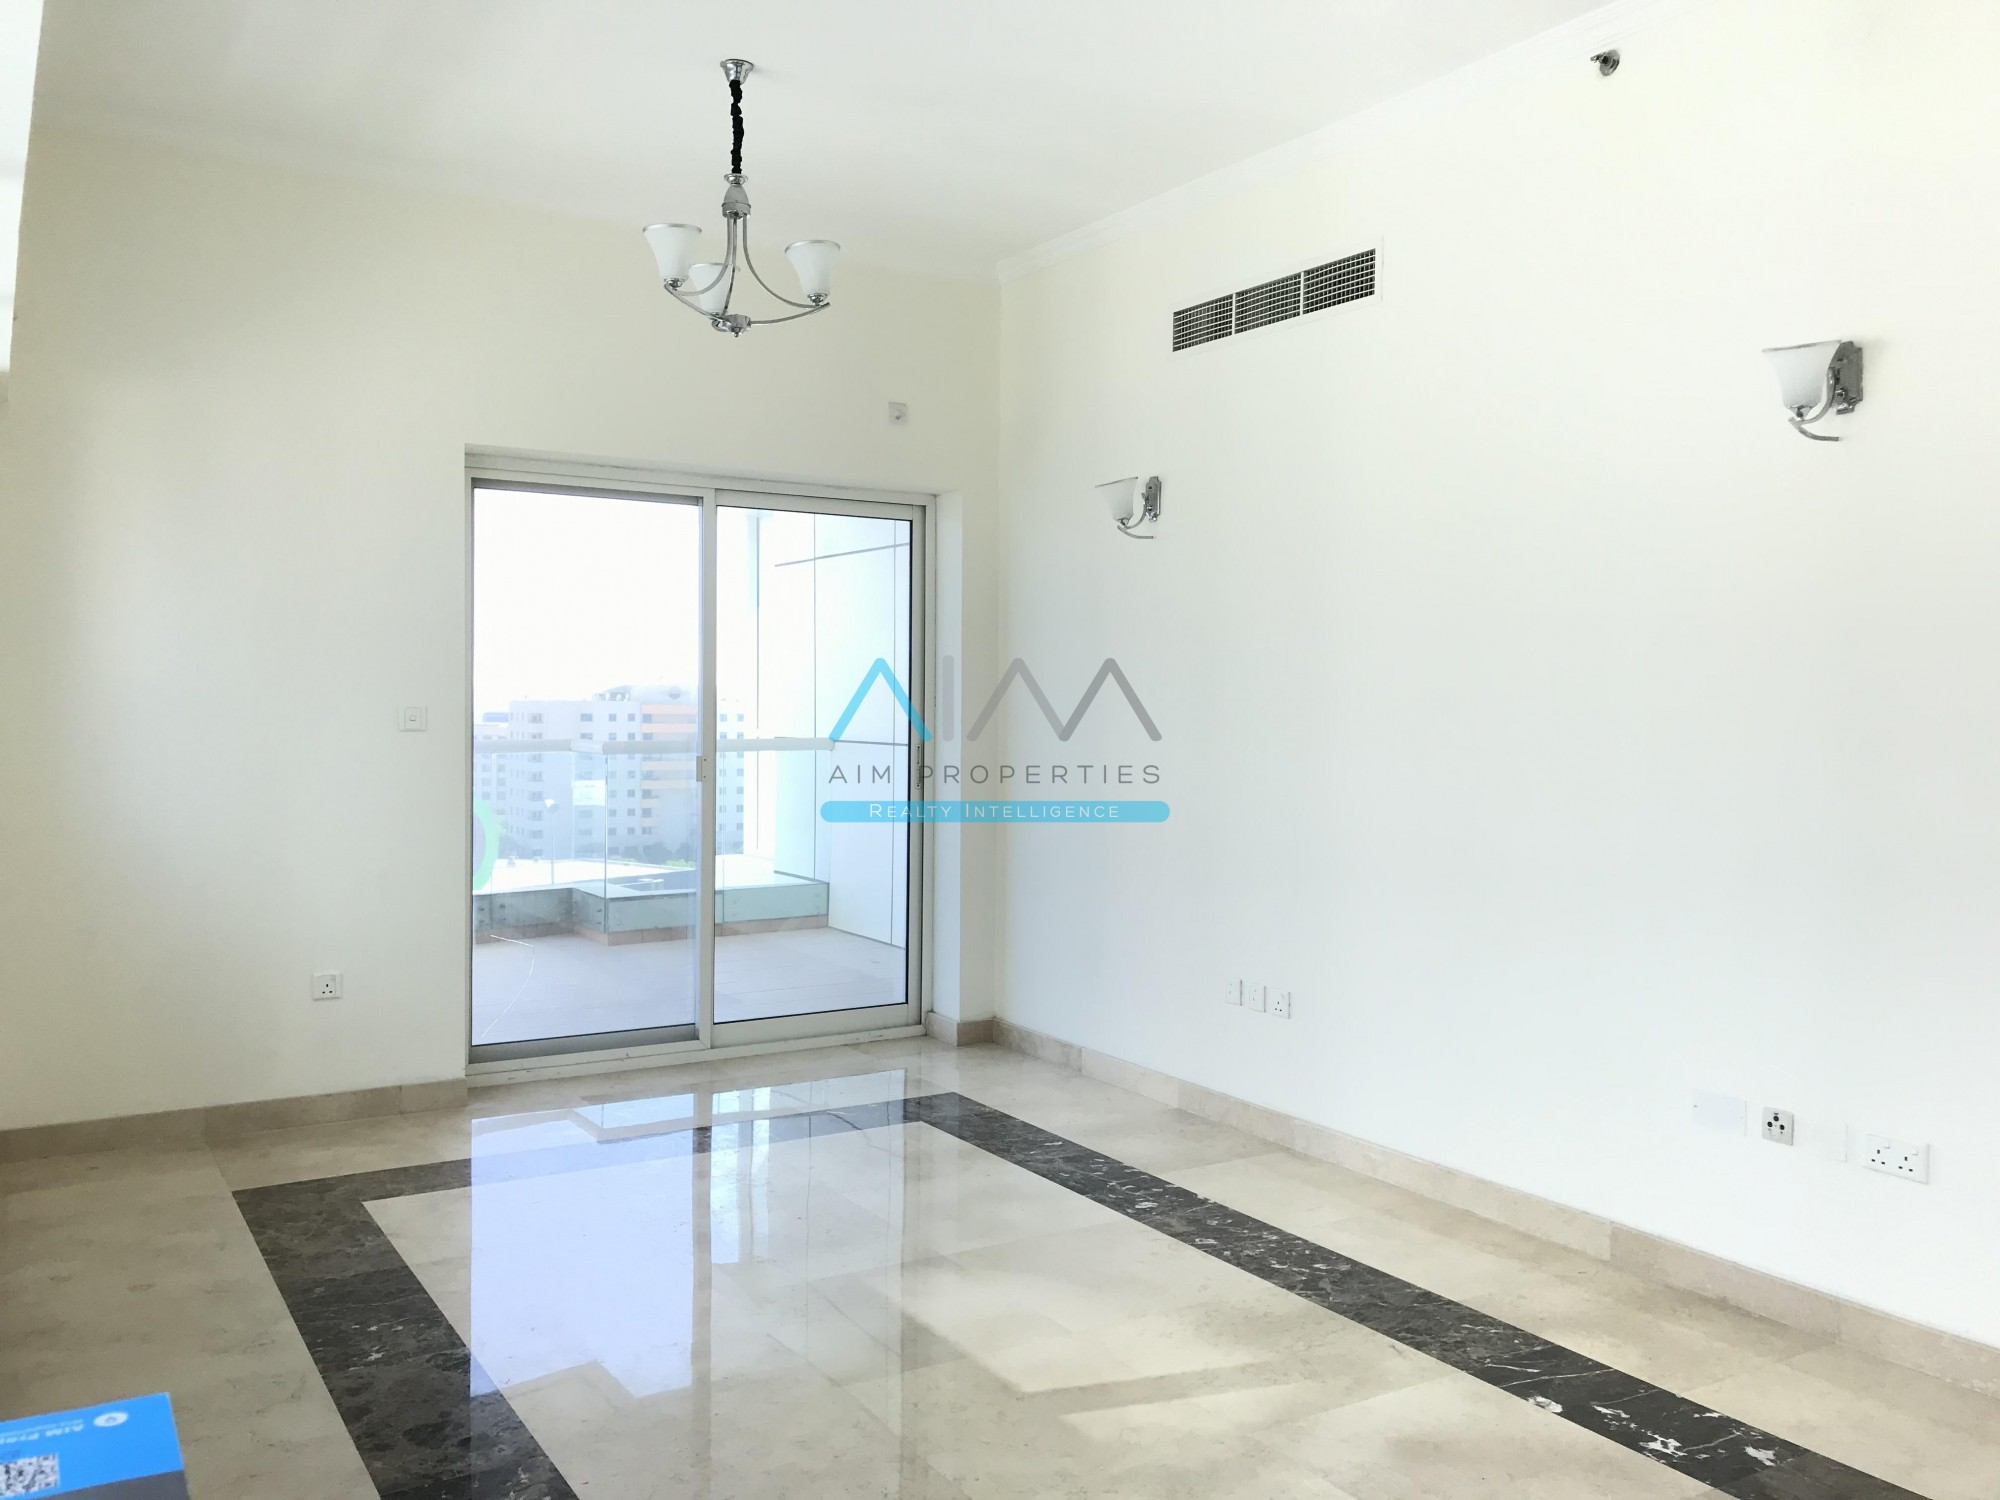 Airy and Spacious 2bedroom - Rented @ 60k - The Zen - Marina